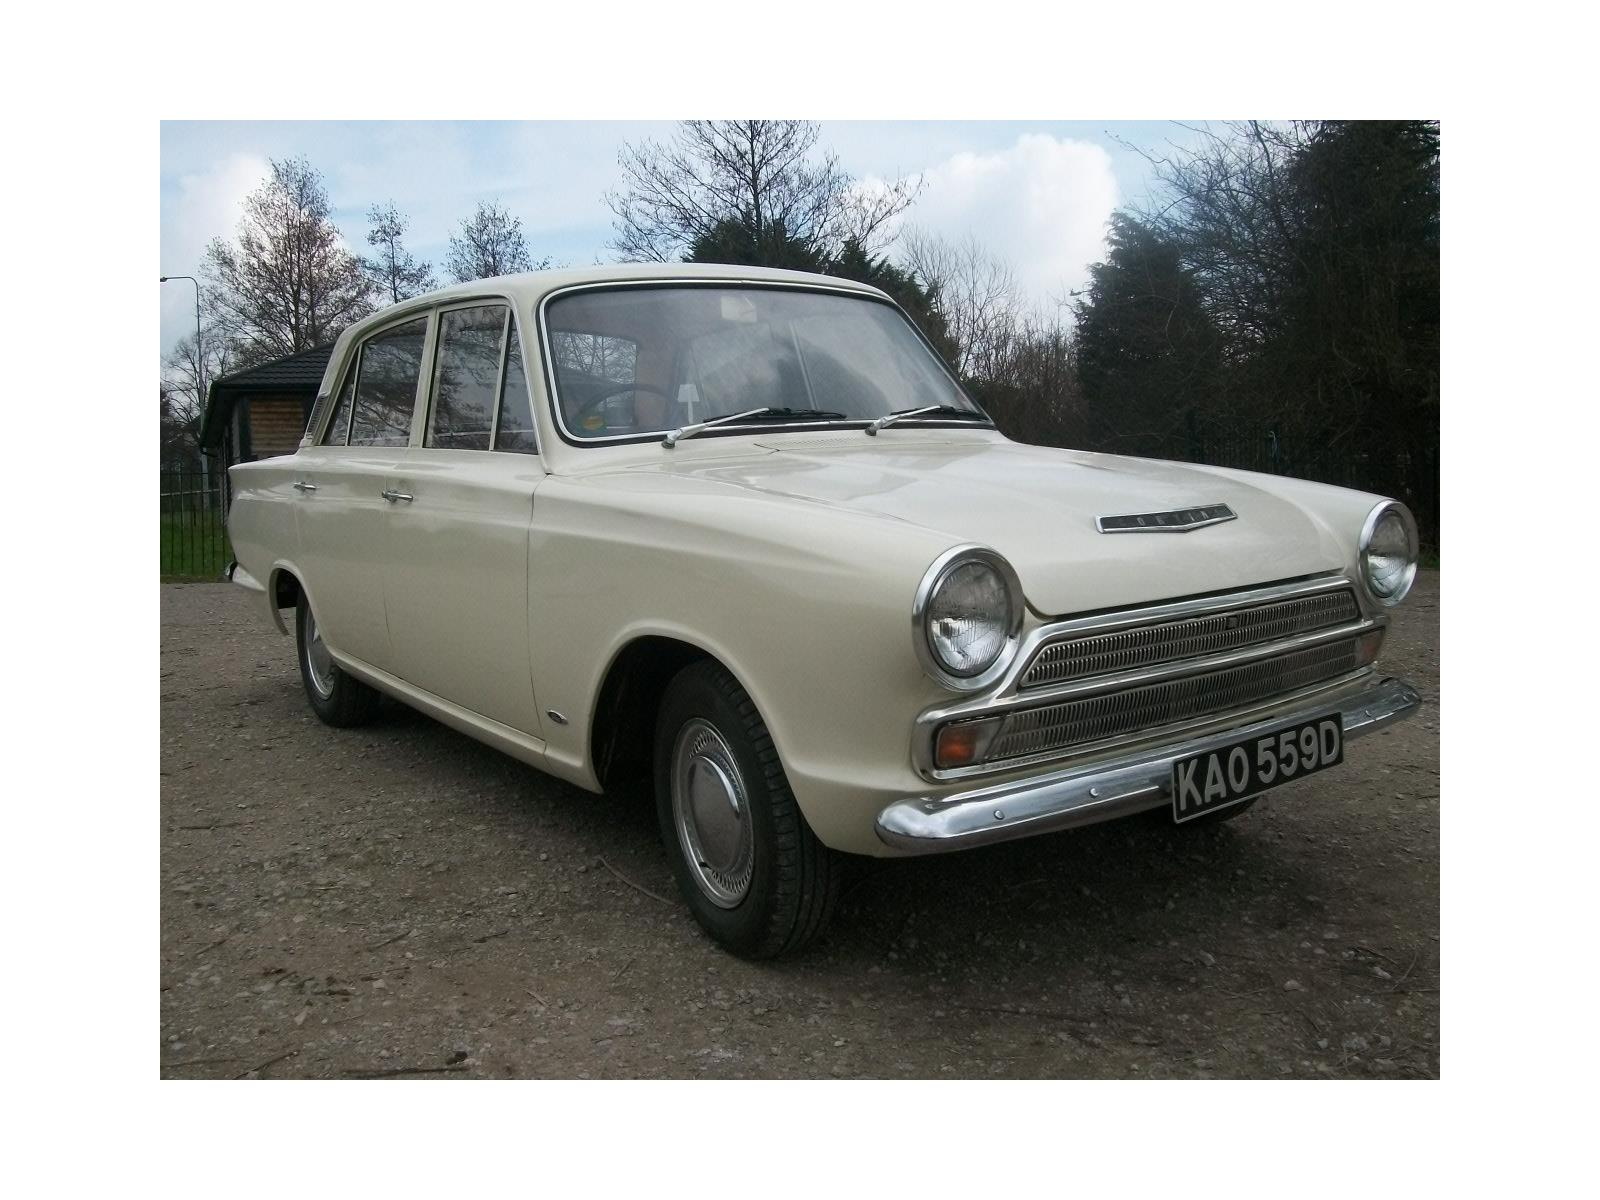 1966 Ford Cortina 4 Door Saloon